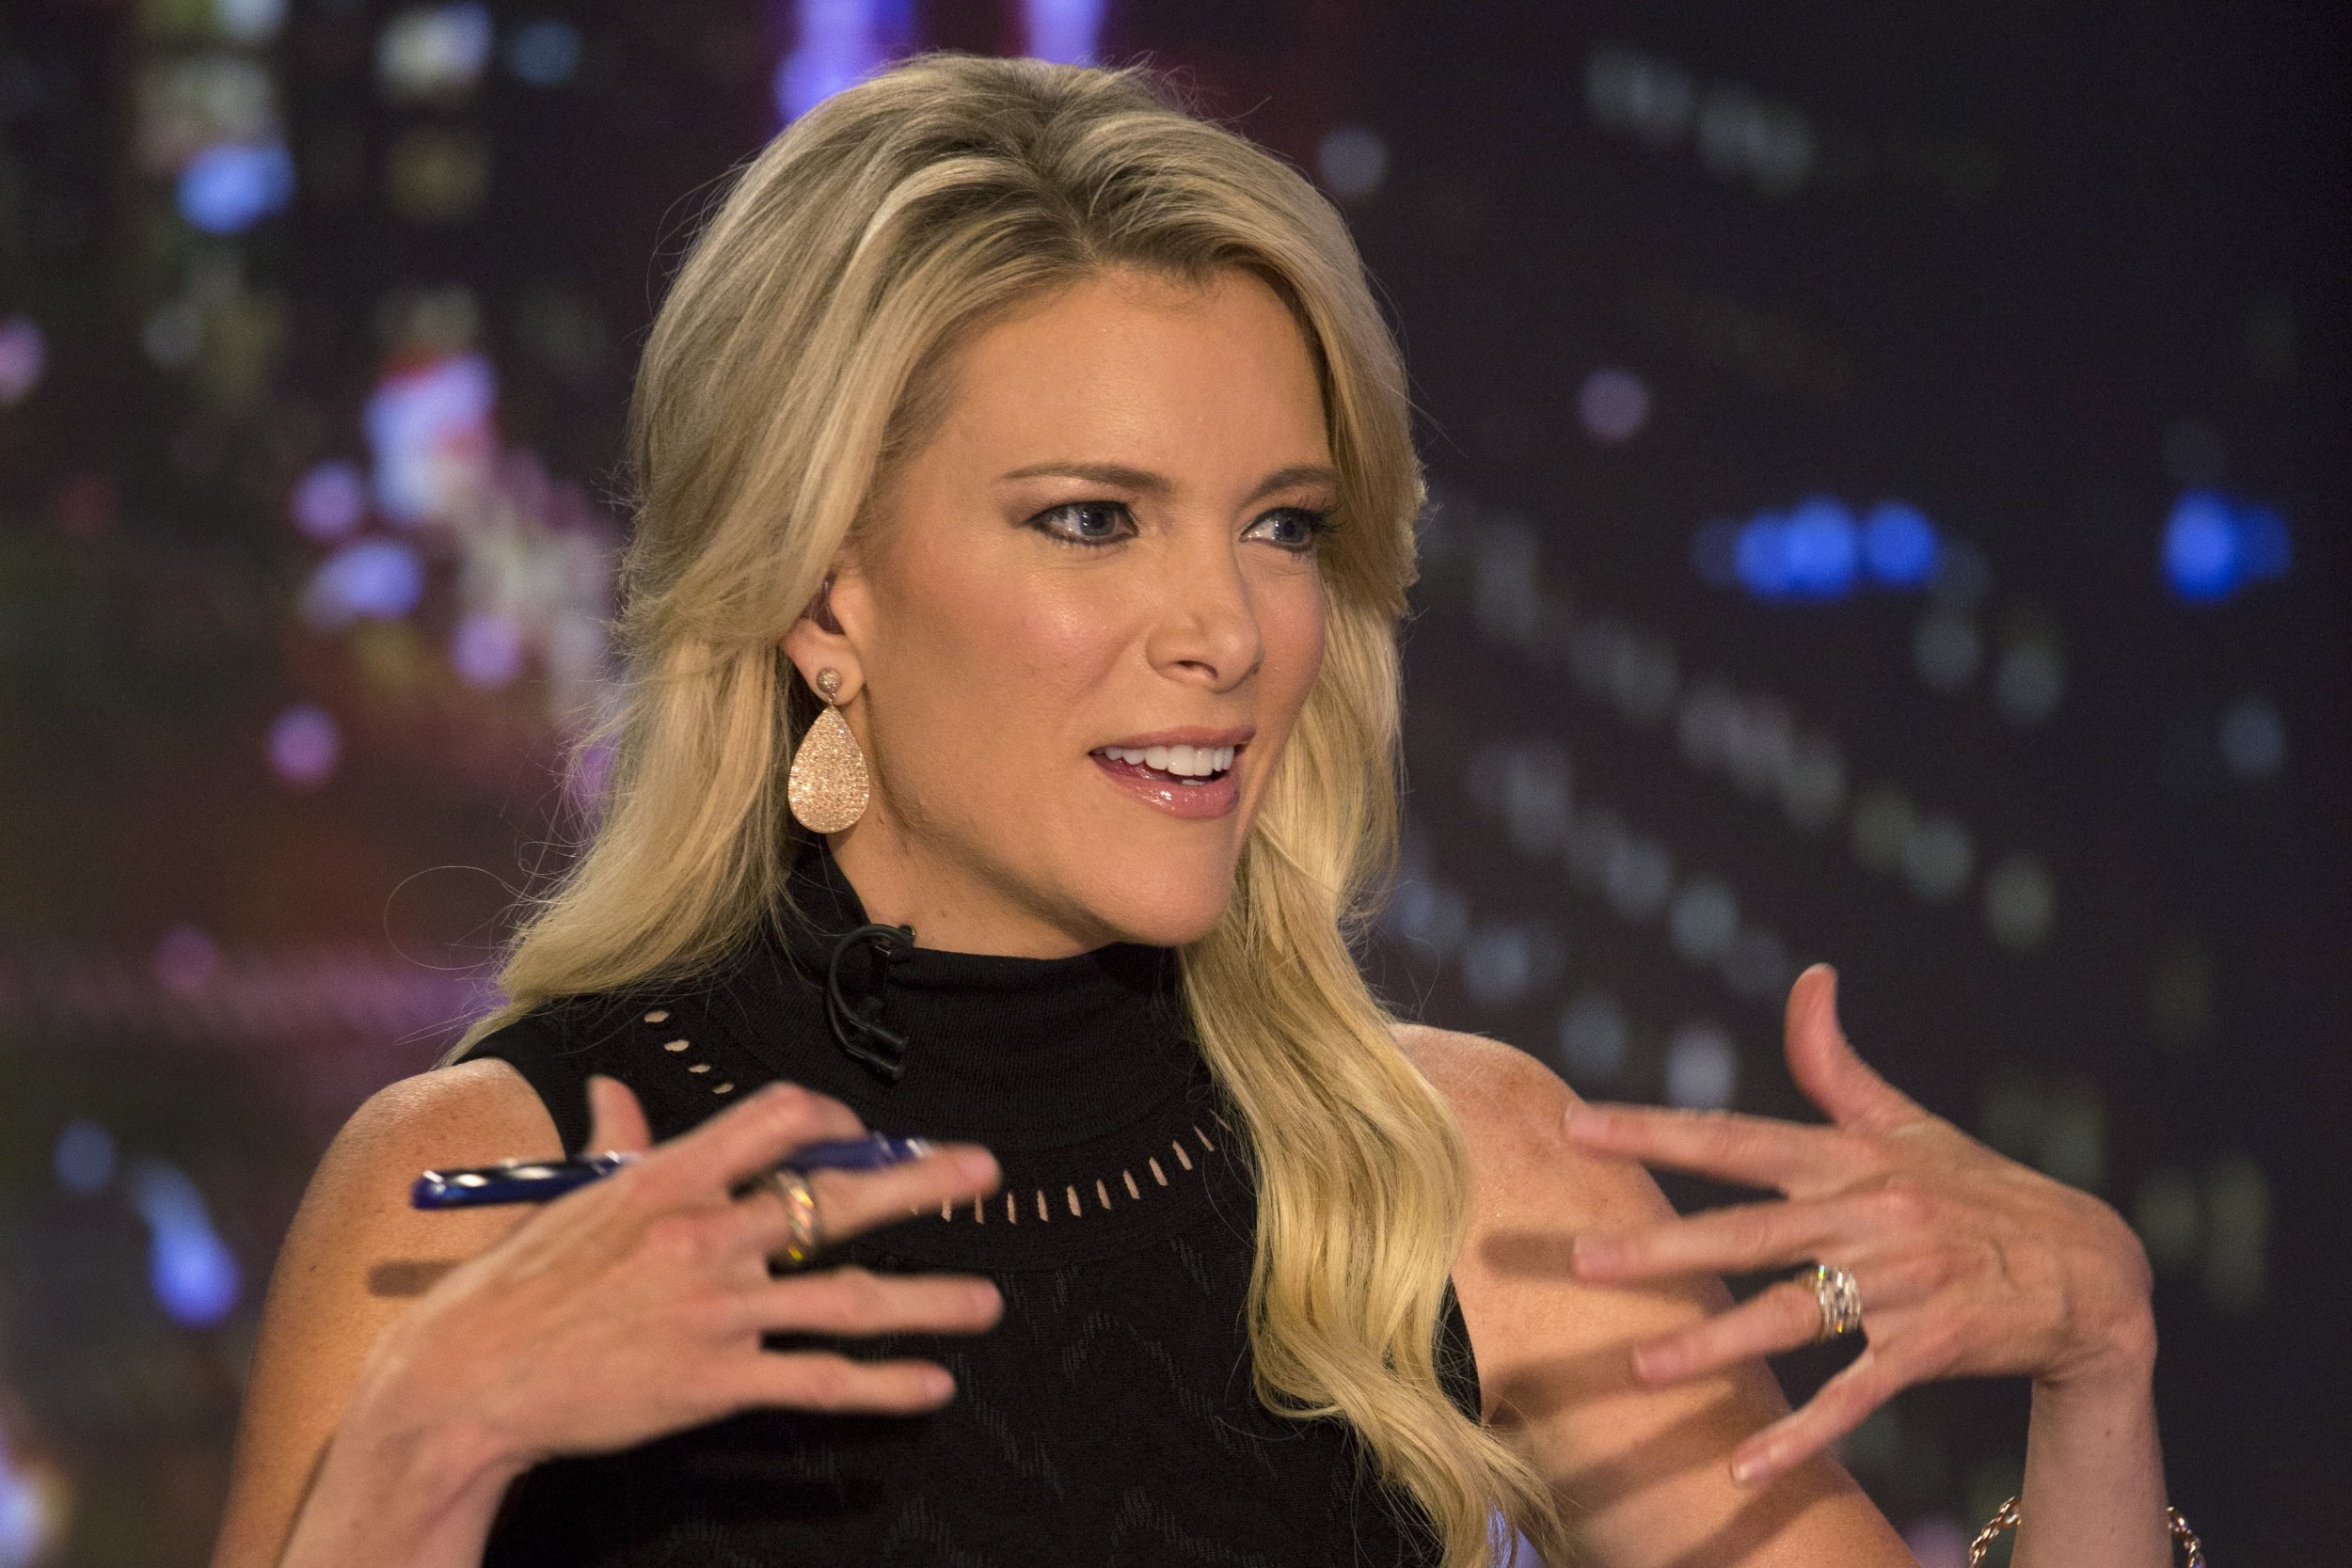 Megyn Kelly, Bret Baier and Chris Wallace Will Moderate ...